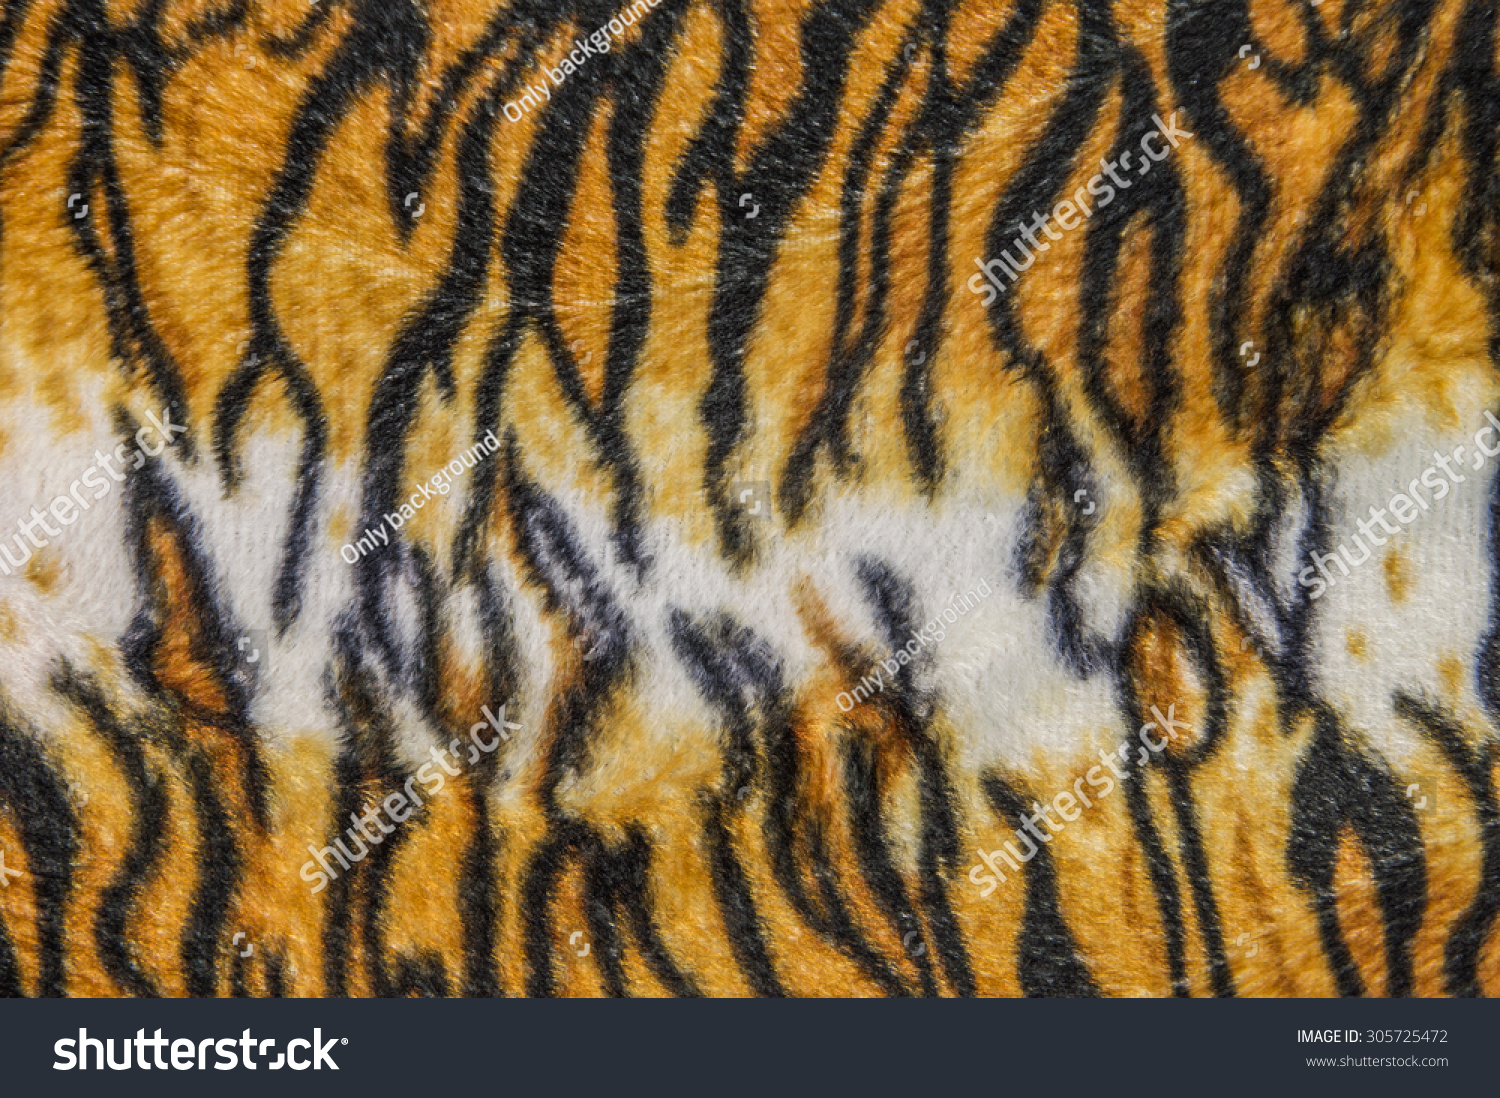 tiger texture skin background | ez canvas